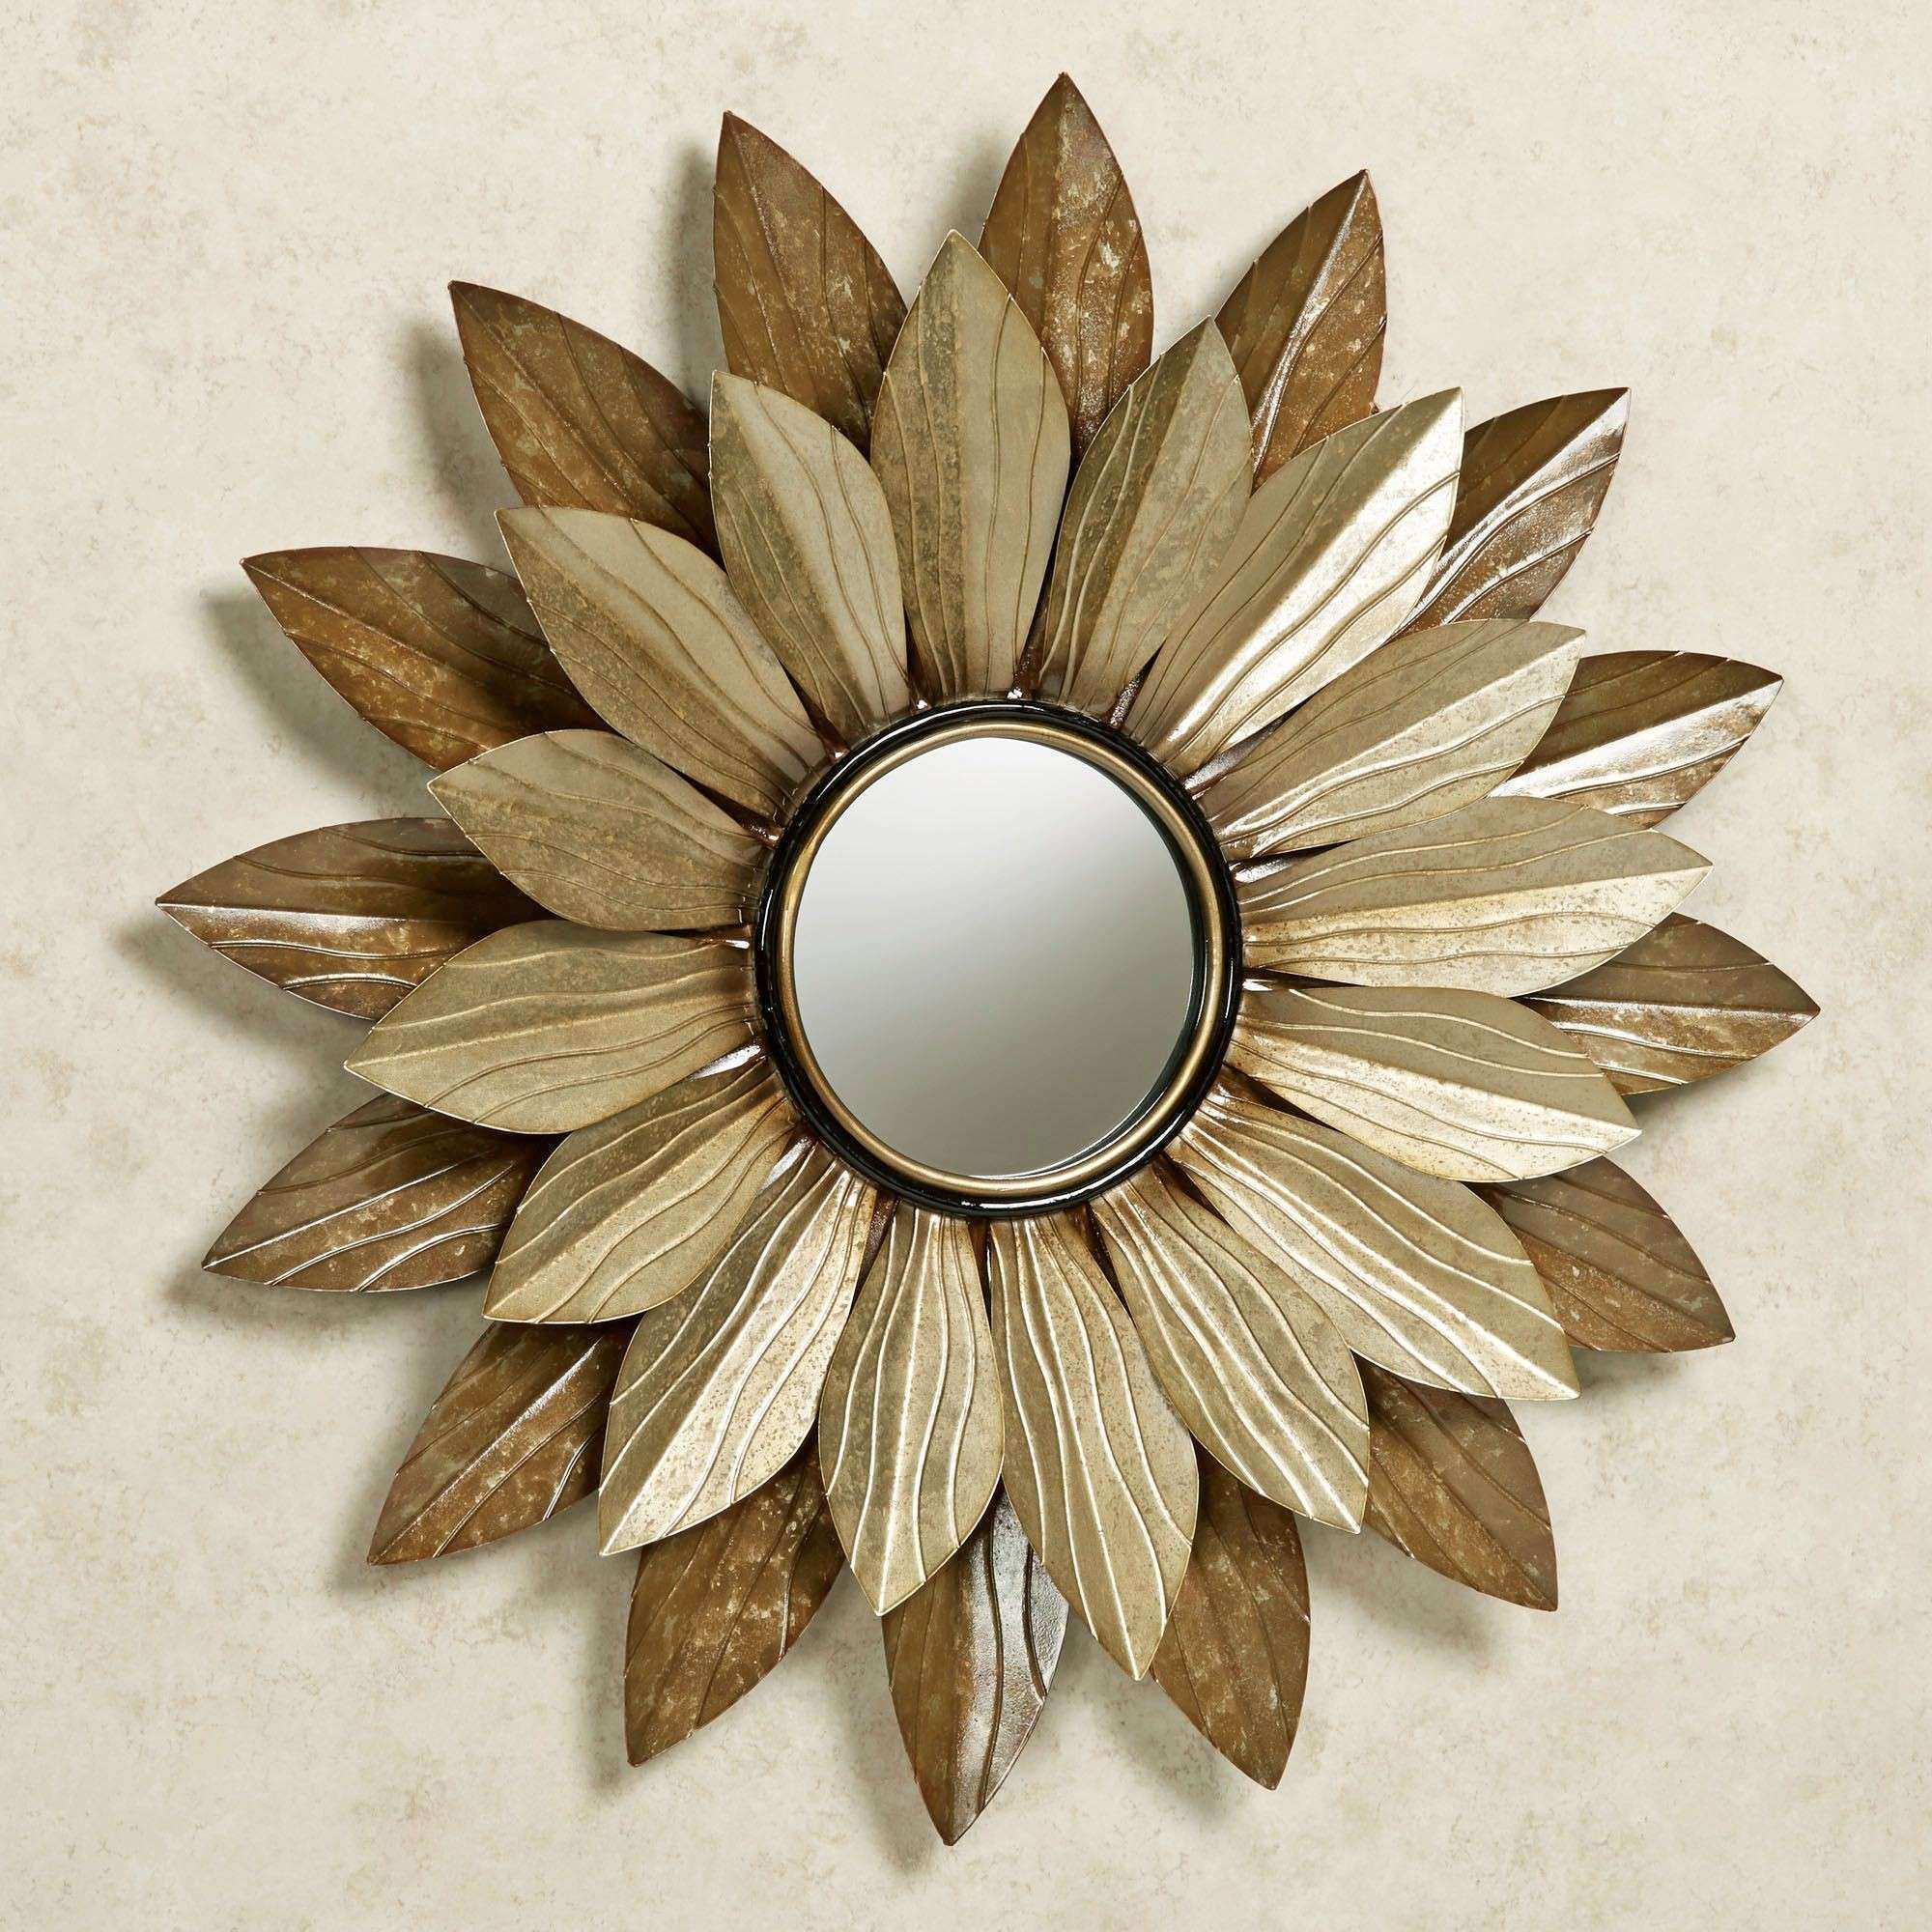 Abellina Layered Floral Mirrored Metal Wall Art